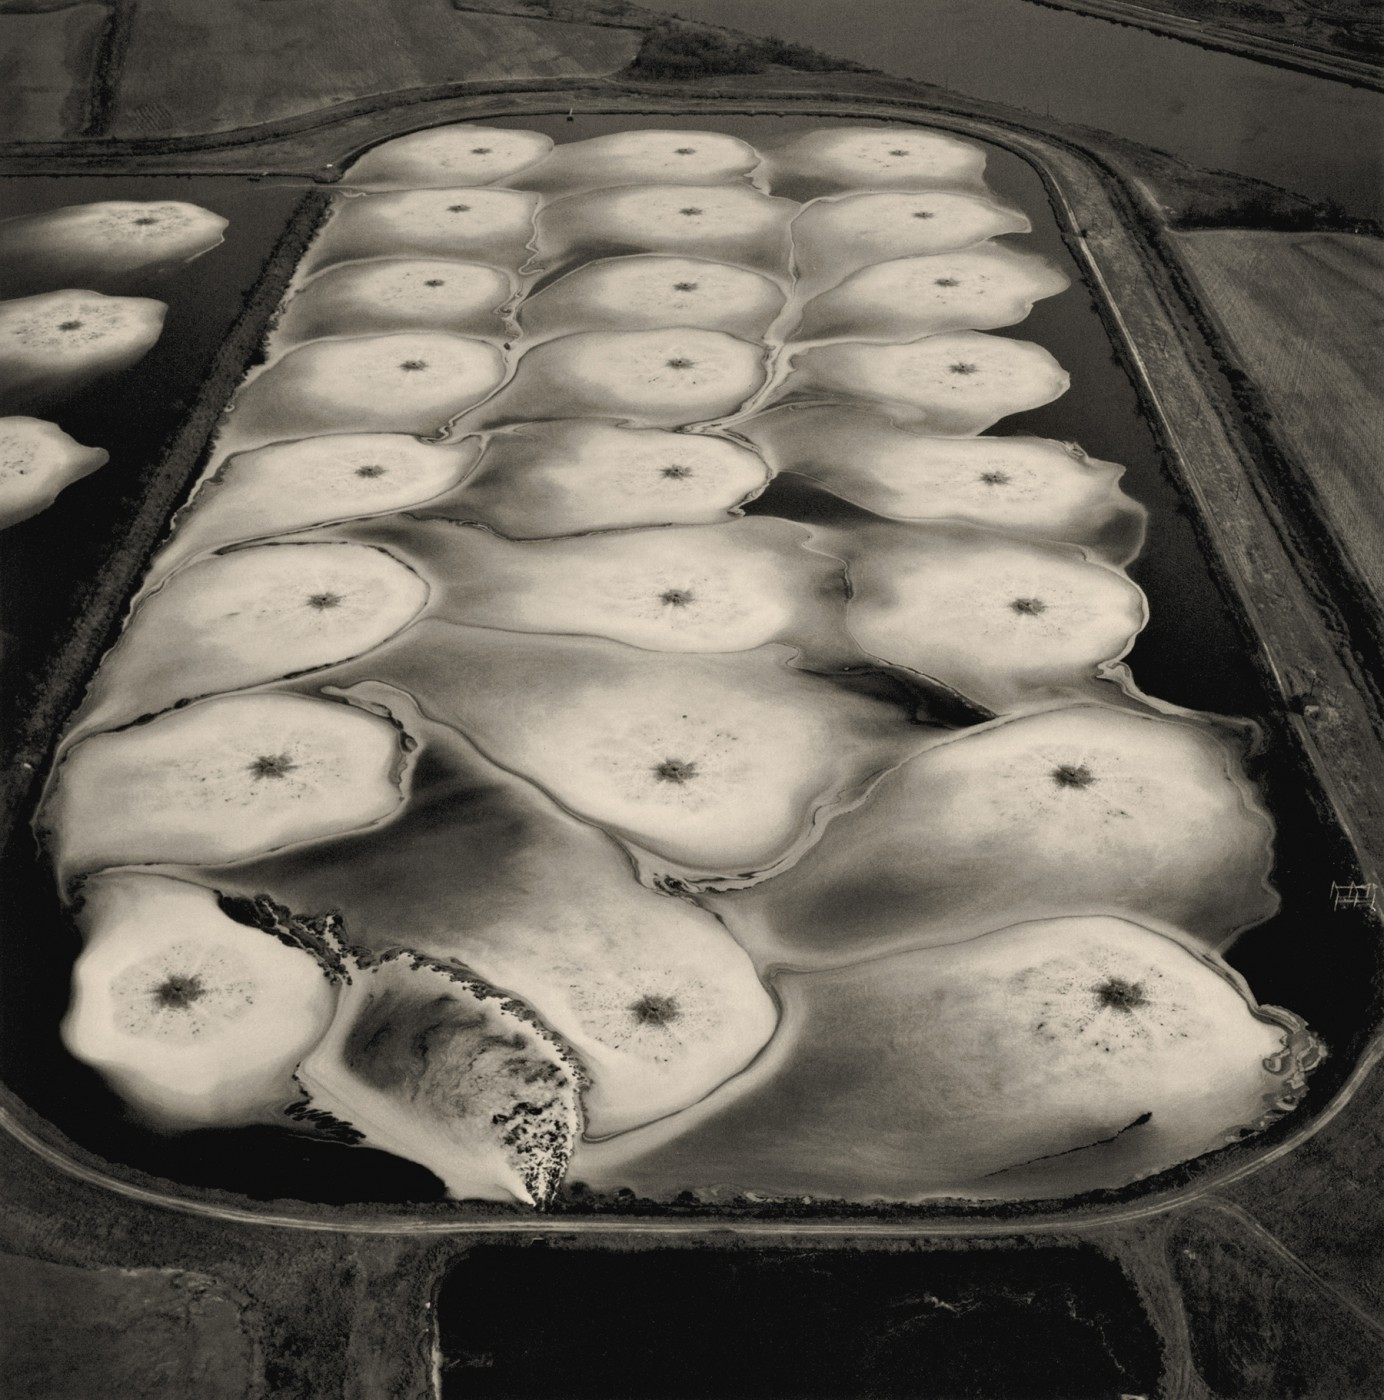 Emmet Gowin, </span><span><em>Aeration Pond, Toxic Water Treatment Facility, Pine Bluff, Arkansas, 1989</em>